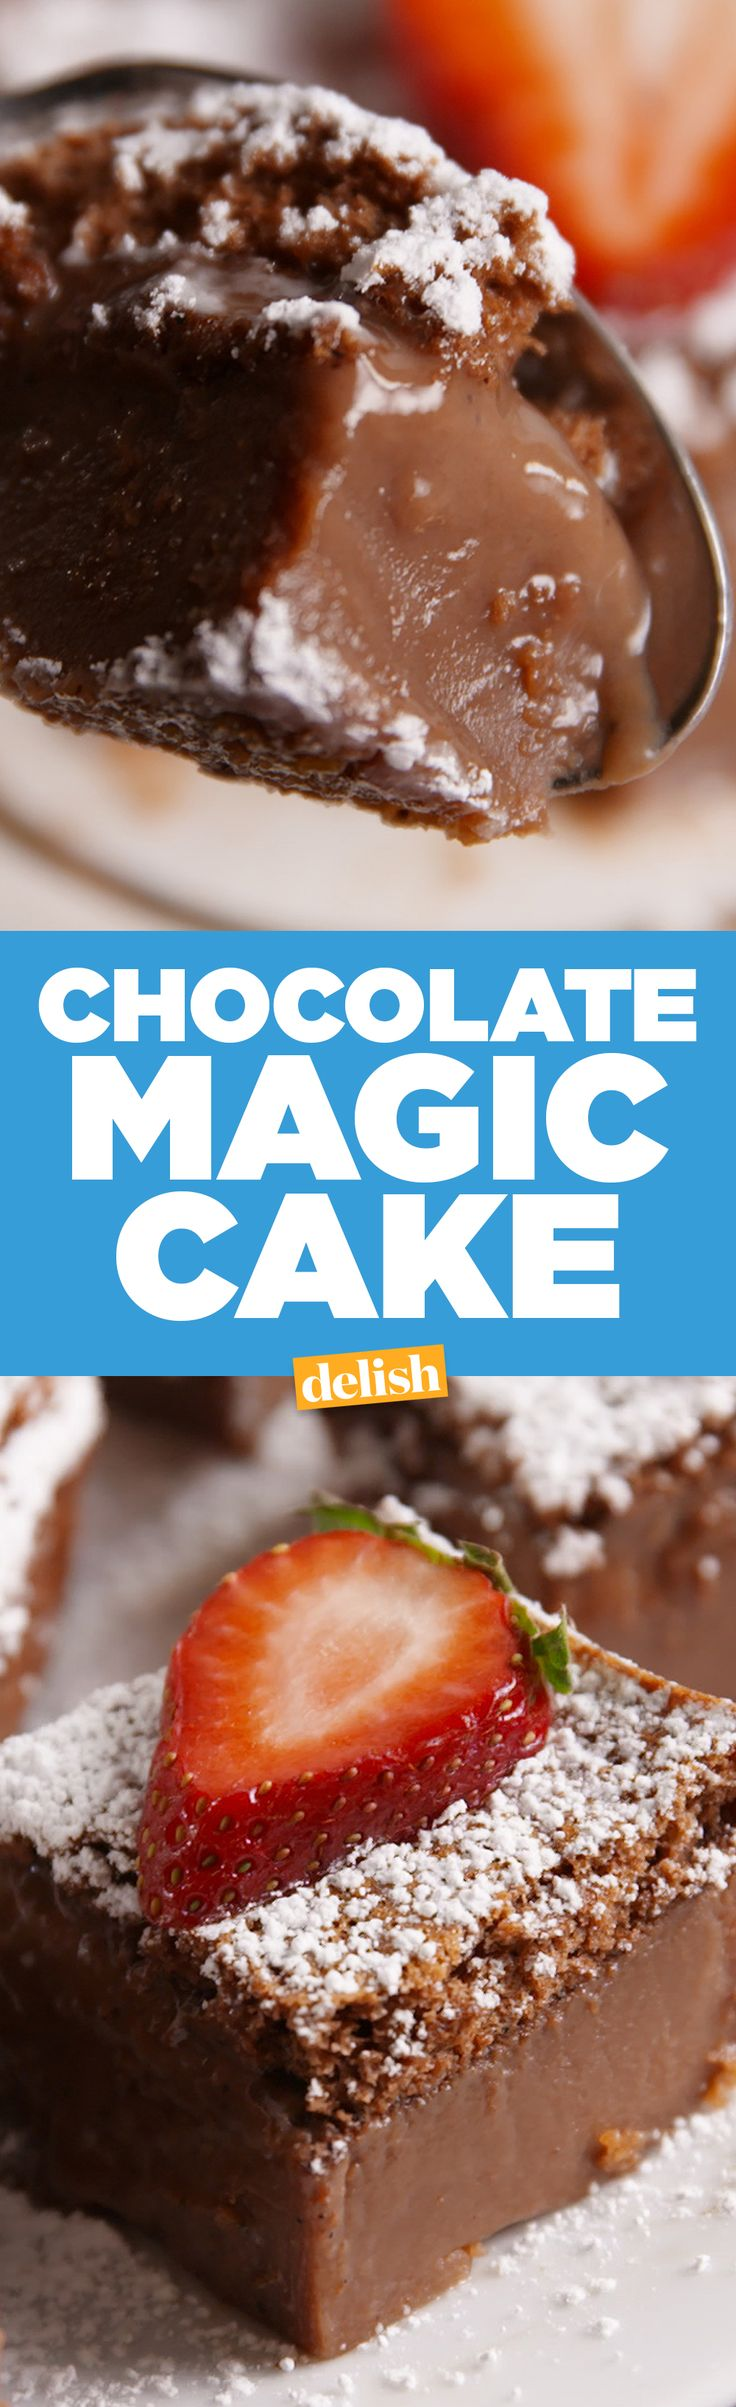 Chocolate Magic Cake has the most dreamy texture you'll ever taste. Get the recipe on Delish.com.